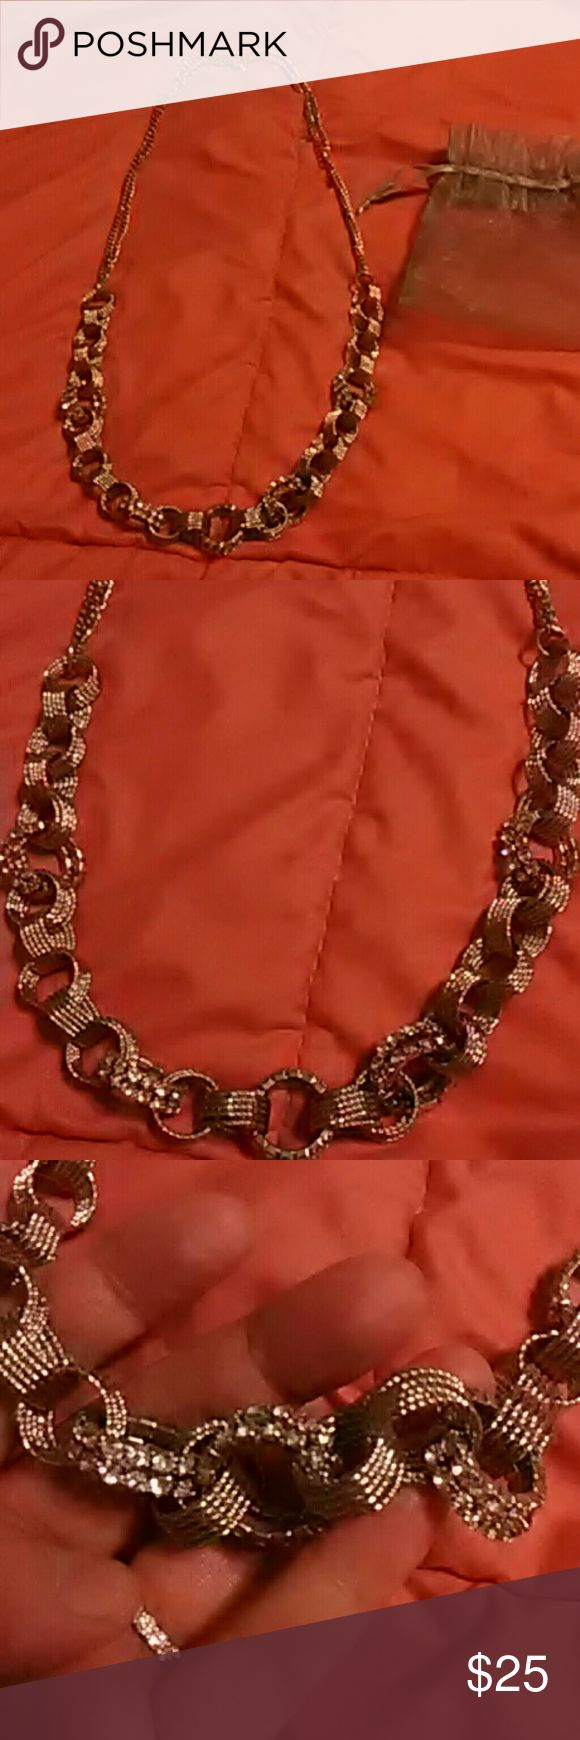 Stunning Ladies Necklace Silver with lots of bling, bought on QVC QVC Jewelry Necklaces